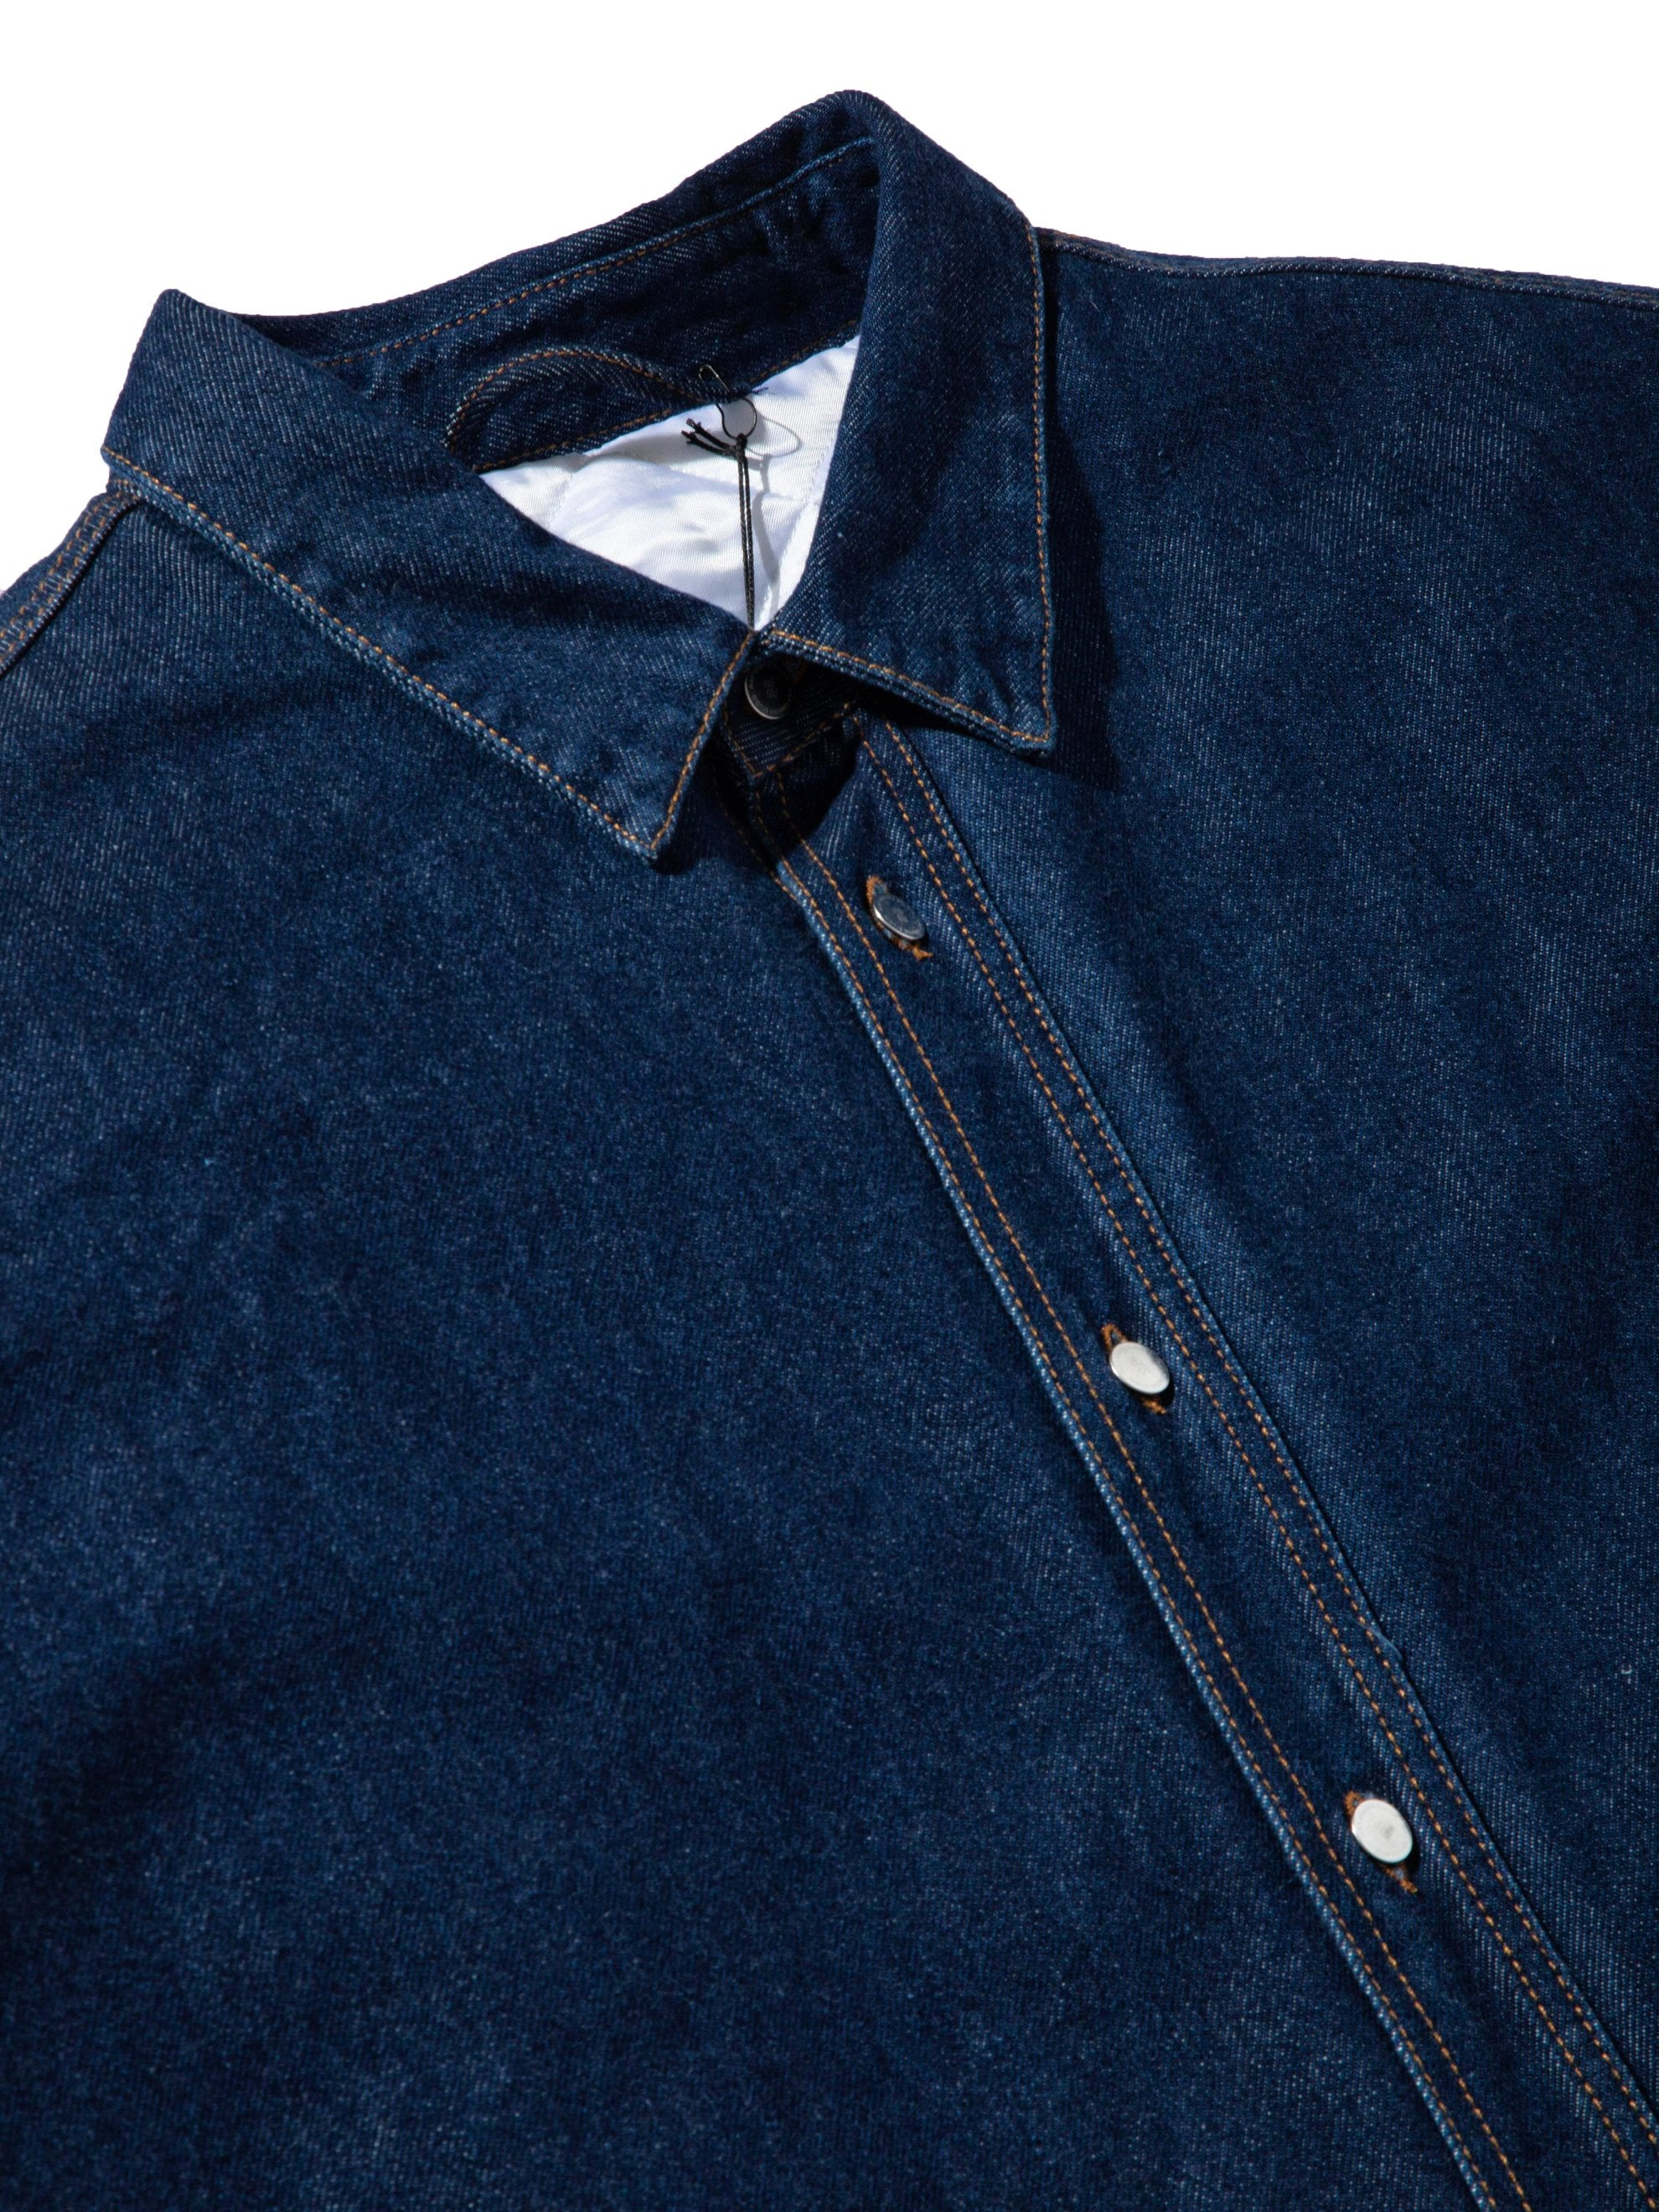 Dark Navy Quilted Denim Shirt 8